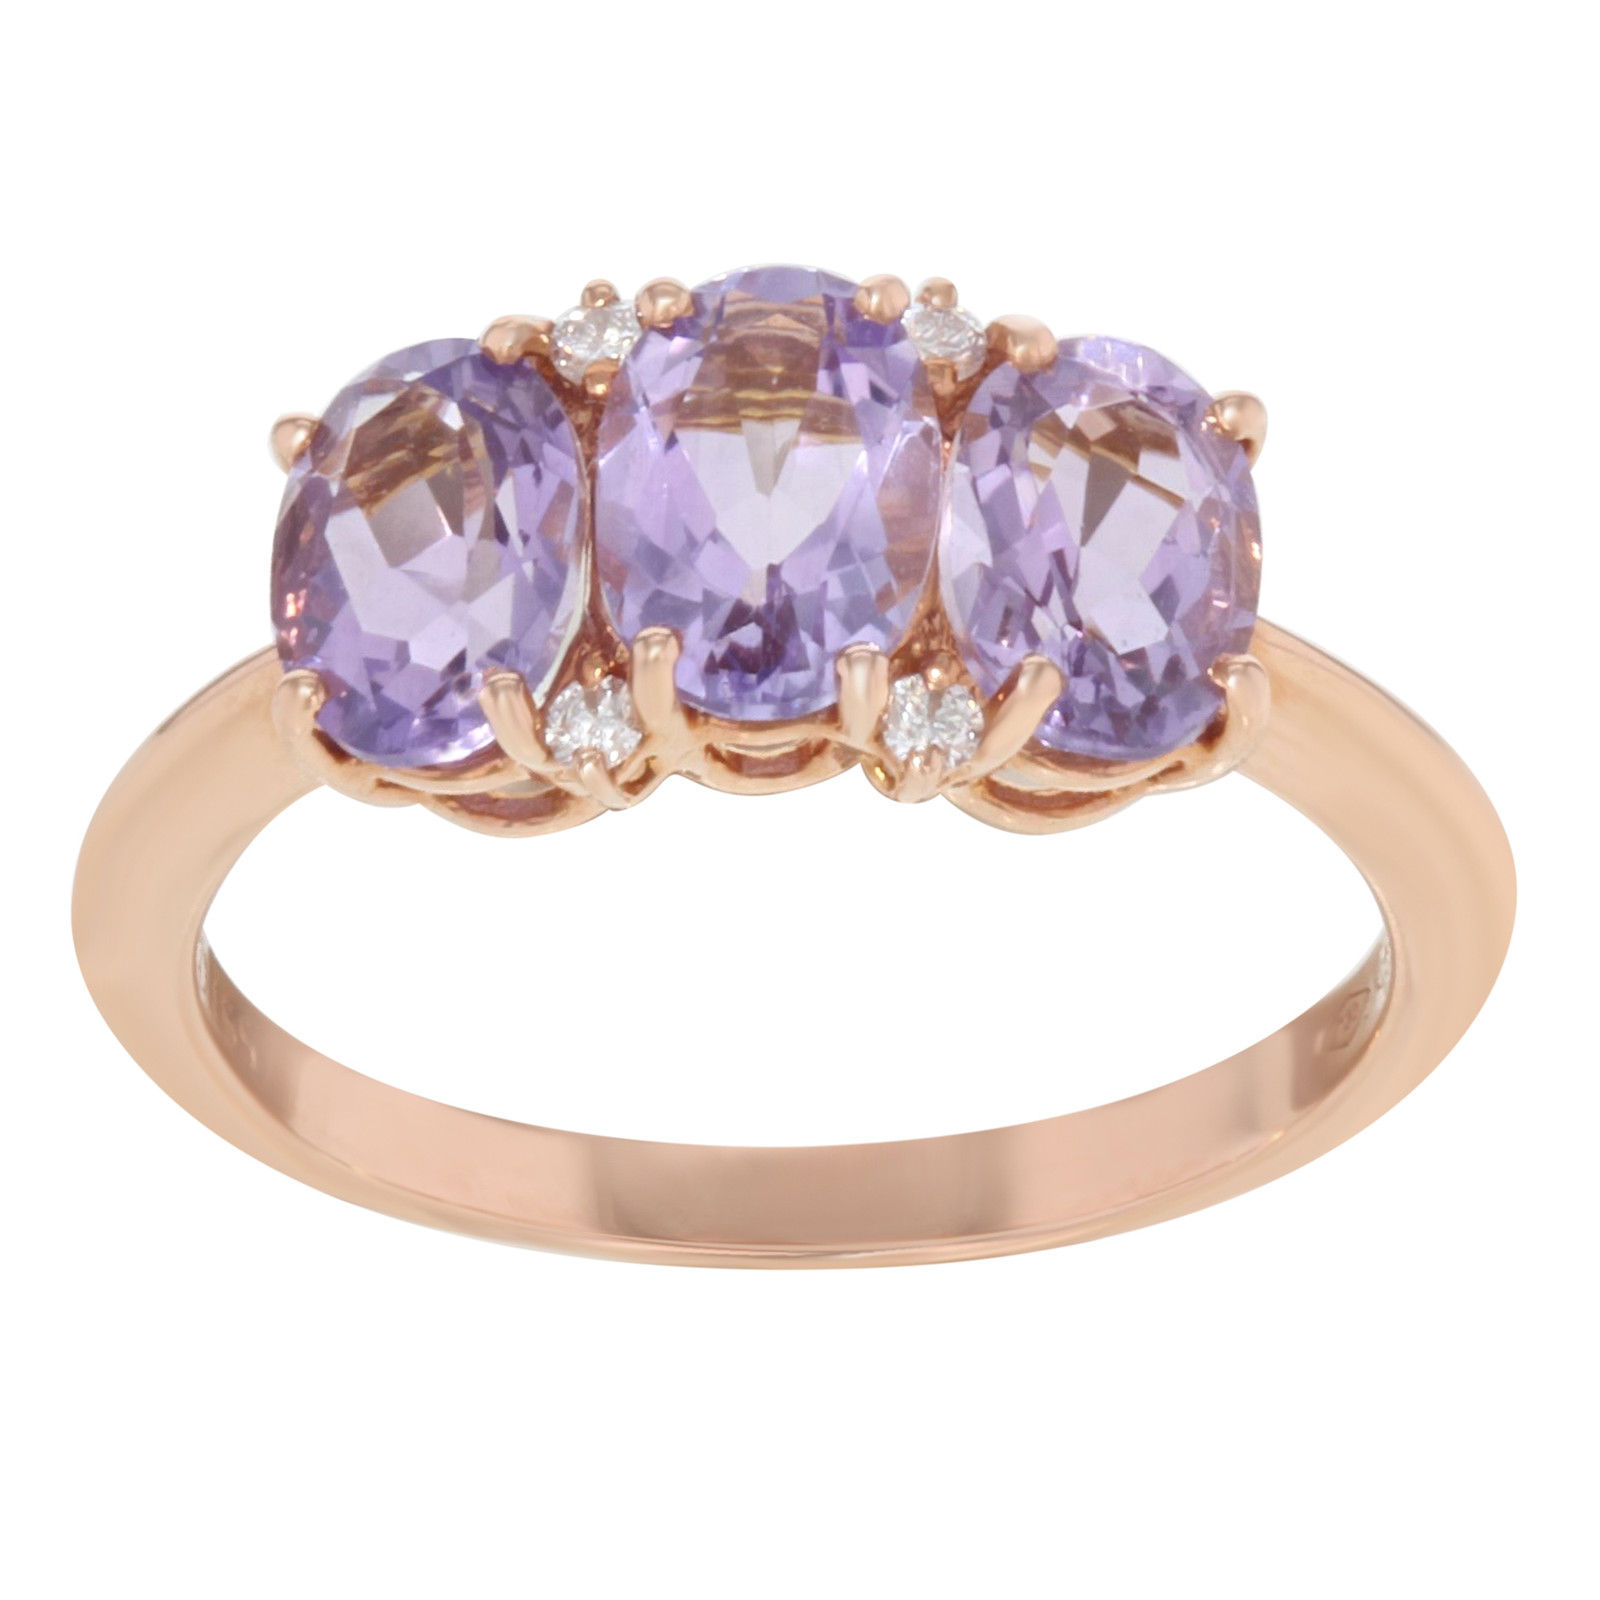 "Bliss by Damiani ""Marina"" Rose Gold 0.06 Cttw Diamonds 2.50 Cttw Amethysts Ring"